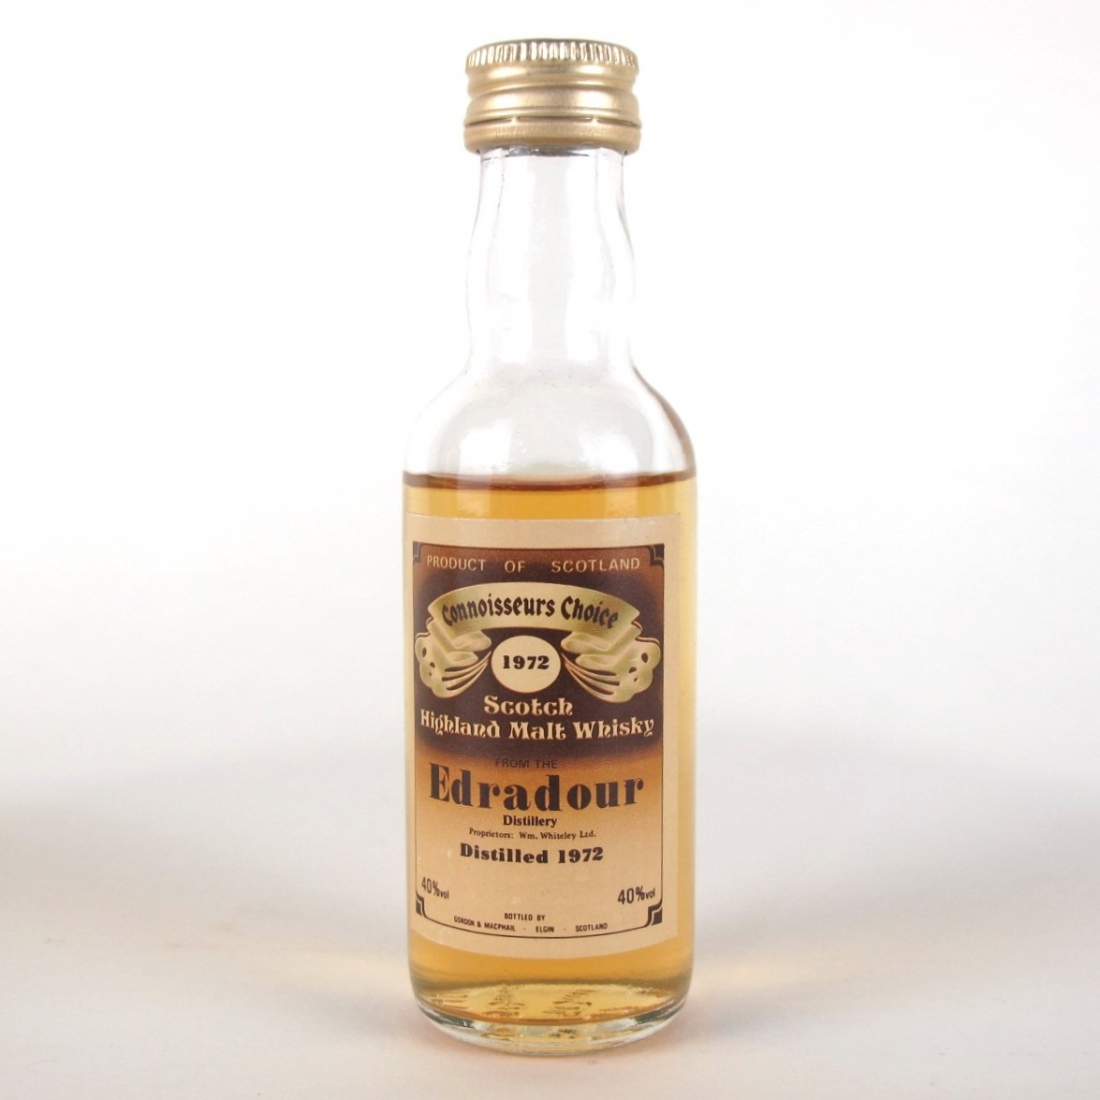 Edradour 1972 Gordon and MacPhail 10 Year Old / Including Matching Miniature